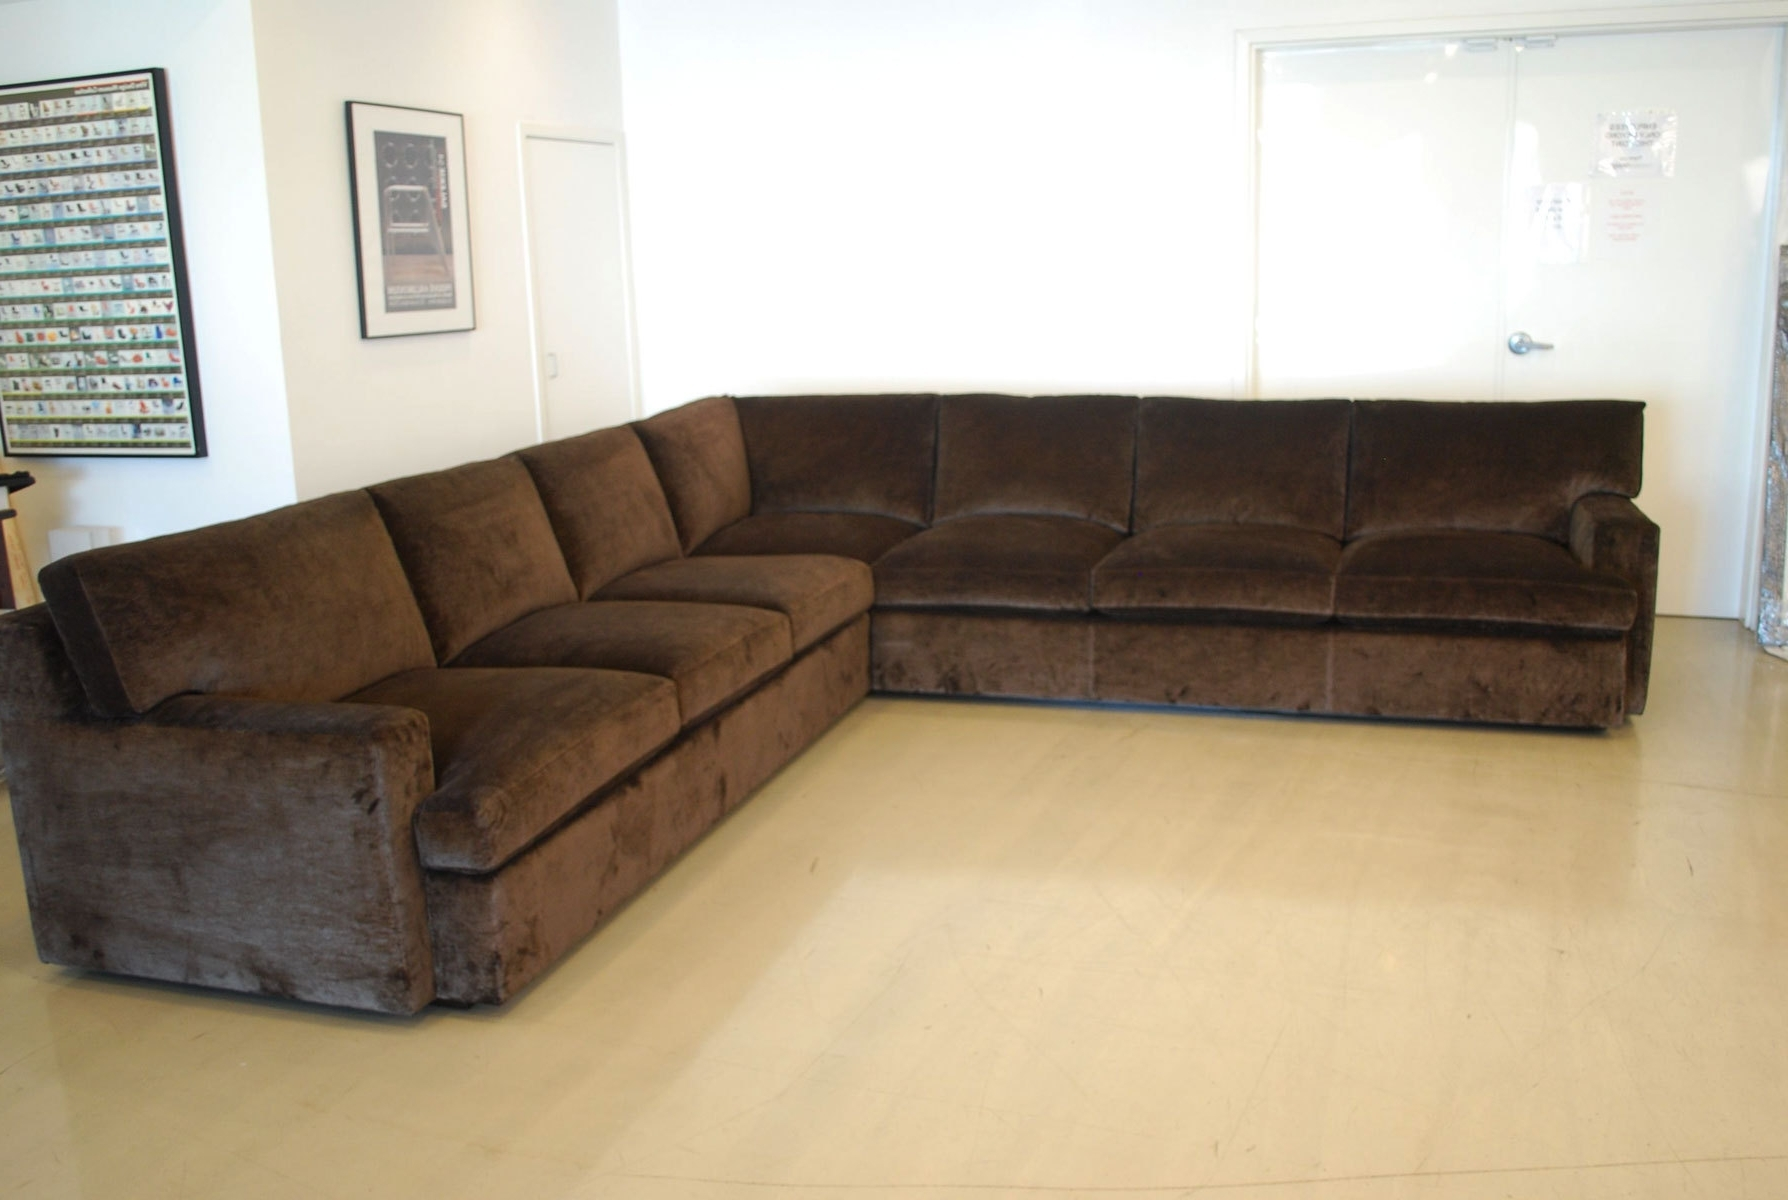 Preferred Amusing Large L Shaped Sectional Sofas 99 On The Brick Sofa Bed Regarding The Brick Sectional Sofas (View 8 of 20)